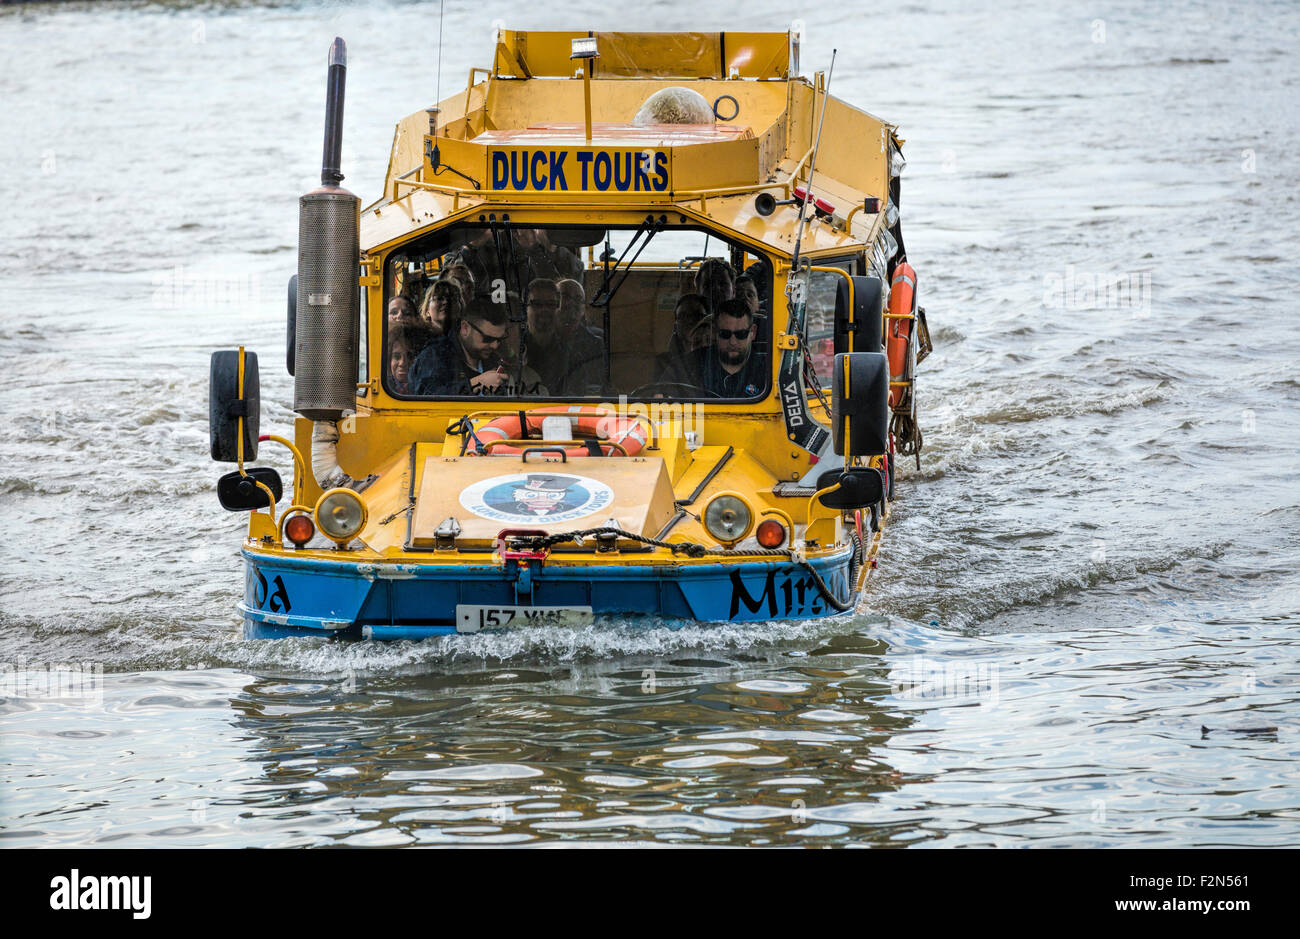 Duck Tours amphibious boat leaves the water of the River Thames in London near Vauxhall Bridge. - Stock Image